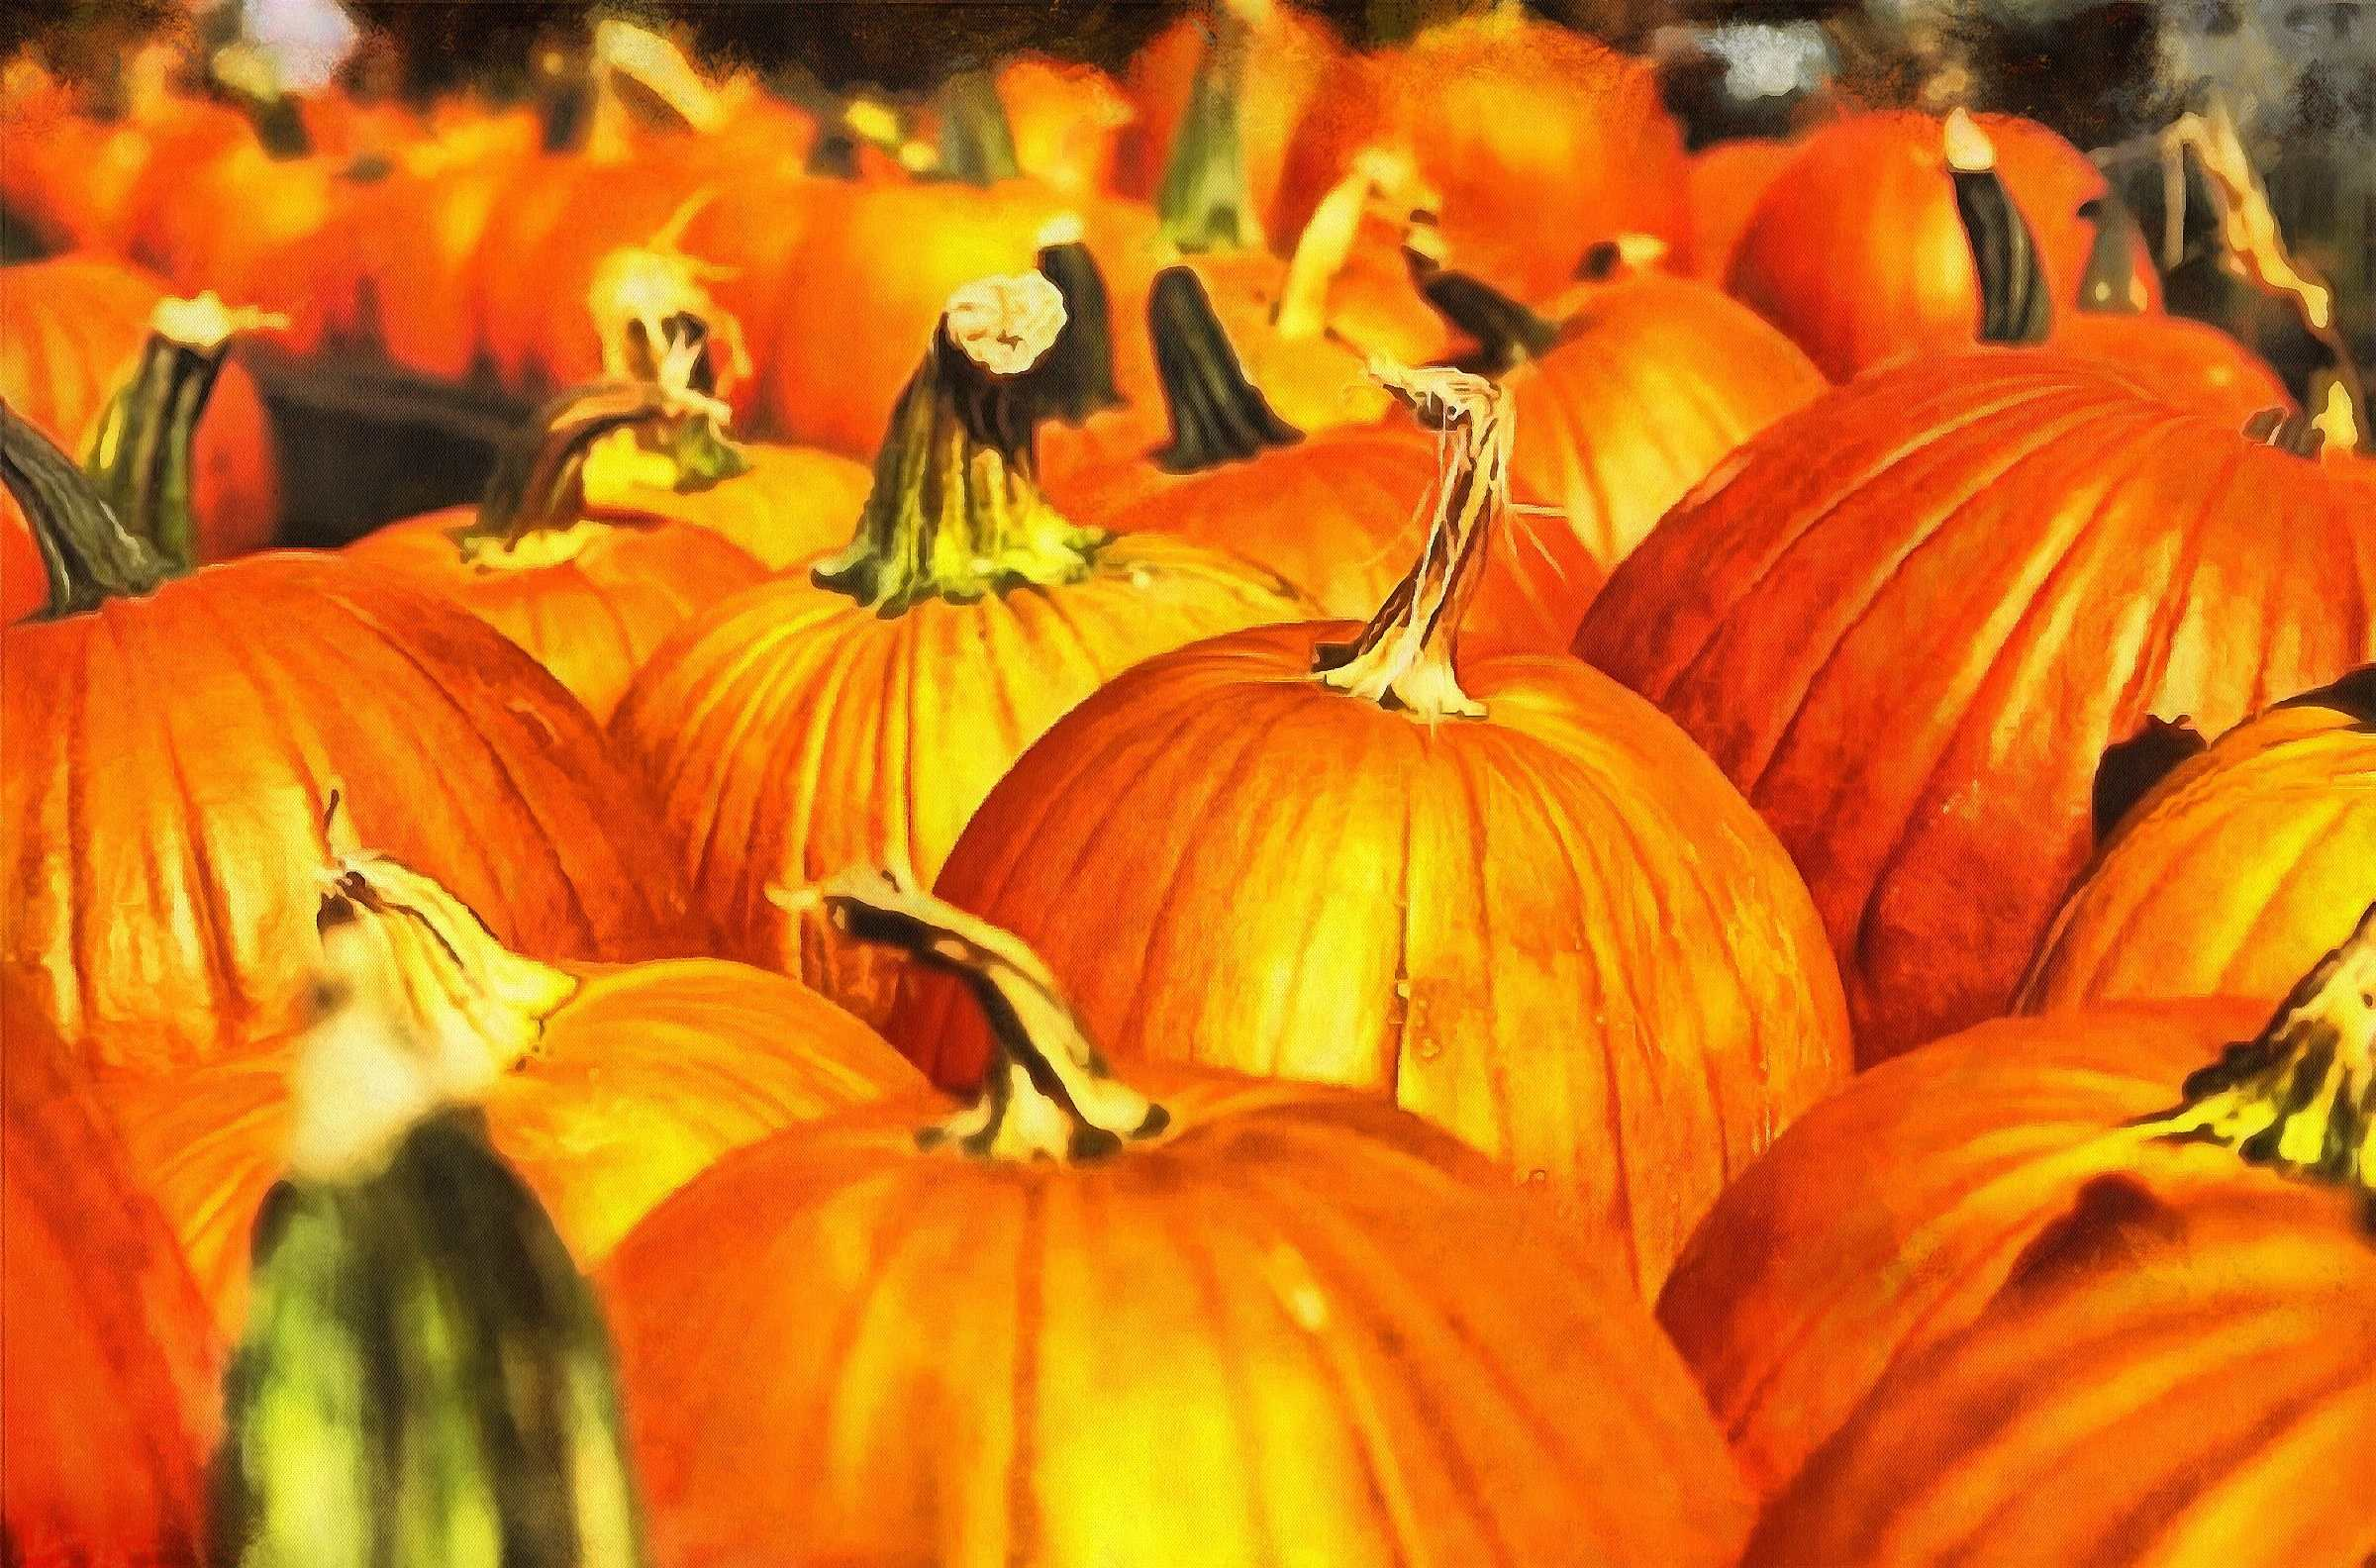 thanksgiving pumpkins,  ripe, crop, pumpkins,  pumpkin, yield, vegetables, holiday,  - thanksgiving, stock free image, public domain photos, free stock photo, download public domain images.